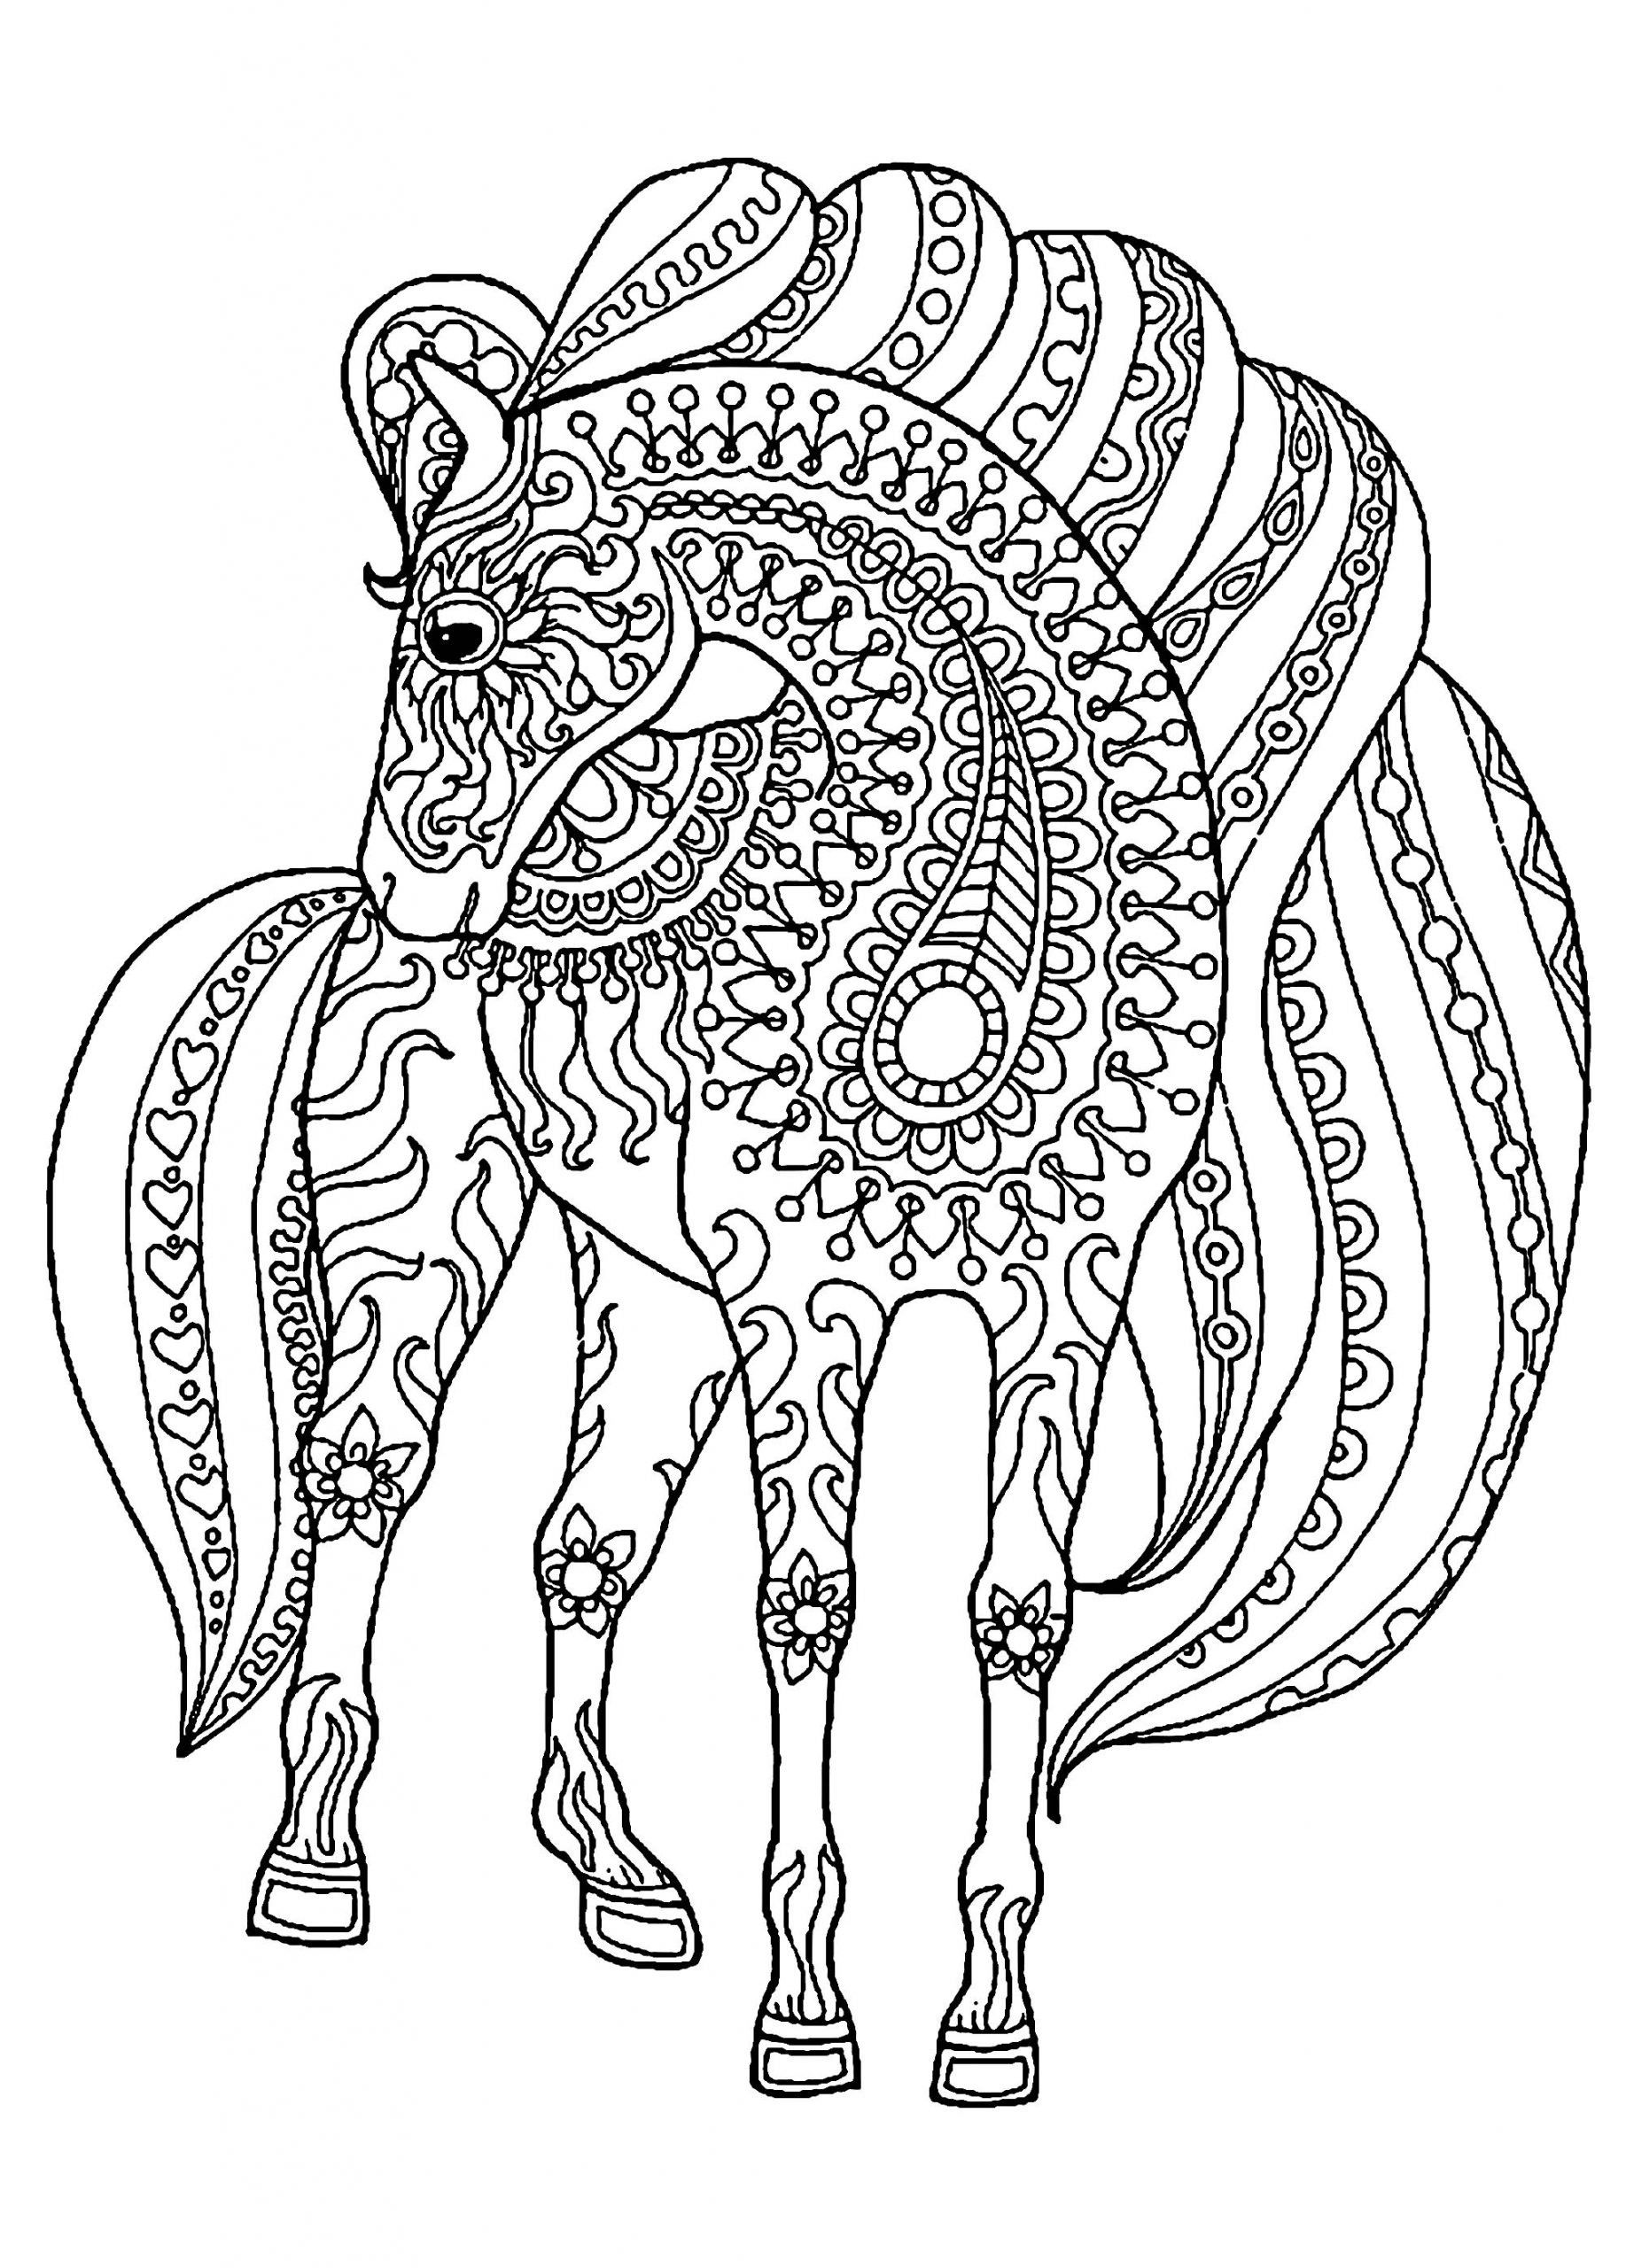 Free Horse Coloring Page Youngandtae Com Horse Coloring Pages Animal Coloring Pages Horse Coloring Books [ 2560 x 1835 Pixel ]